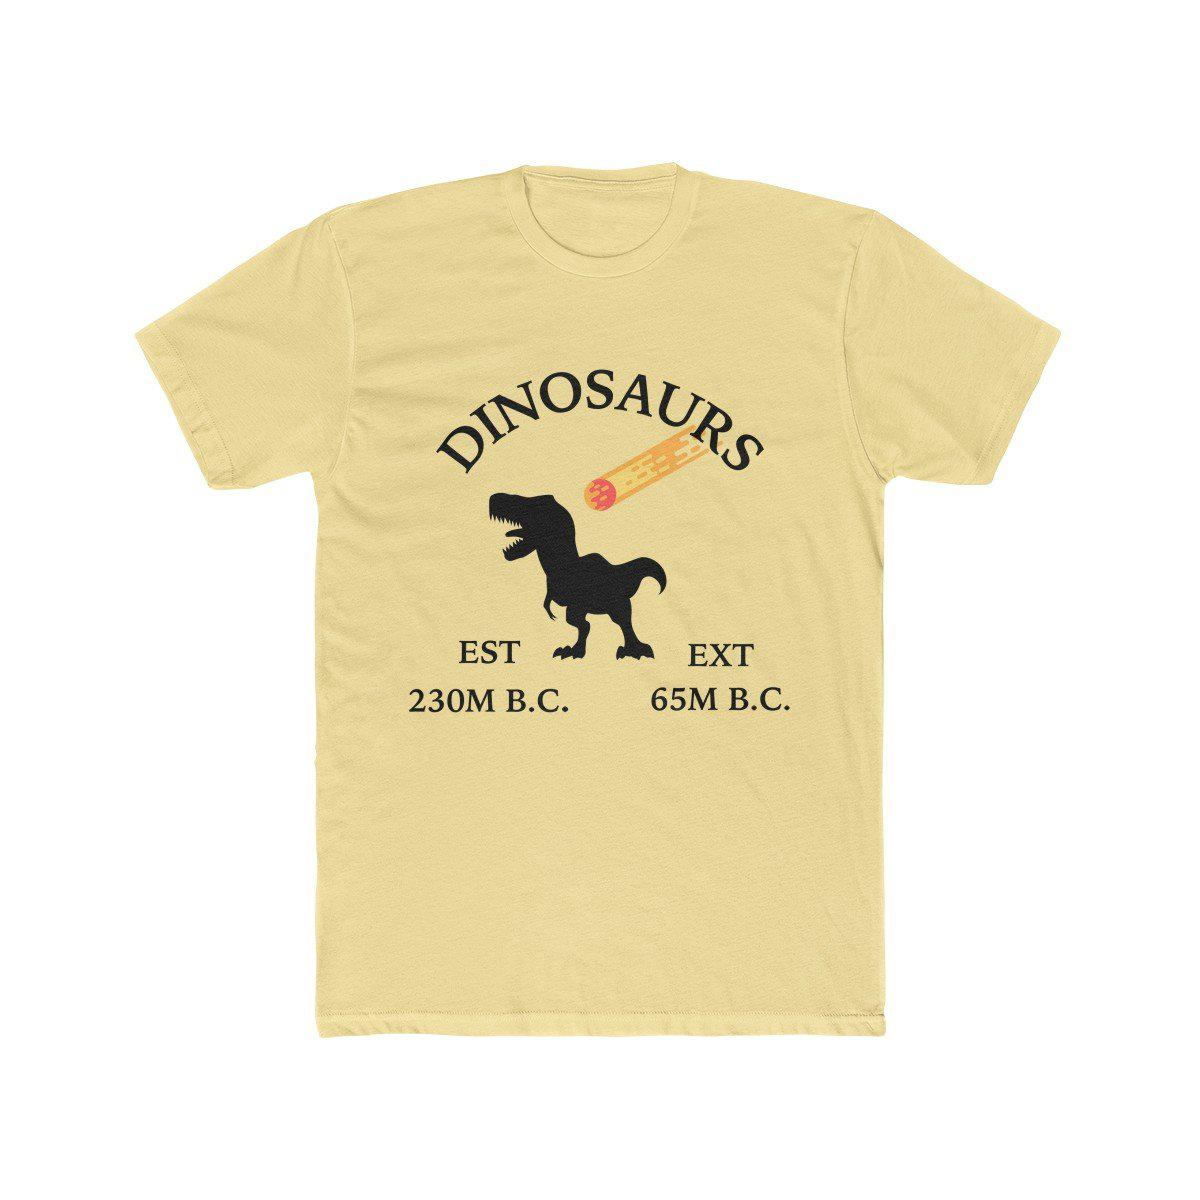 Dinosaur Shirt For Men